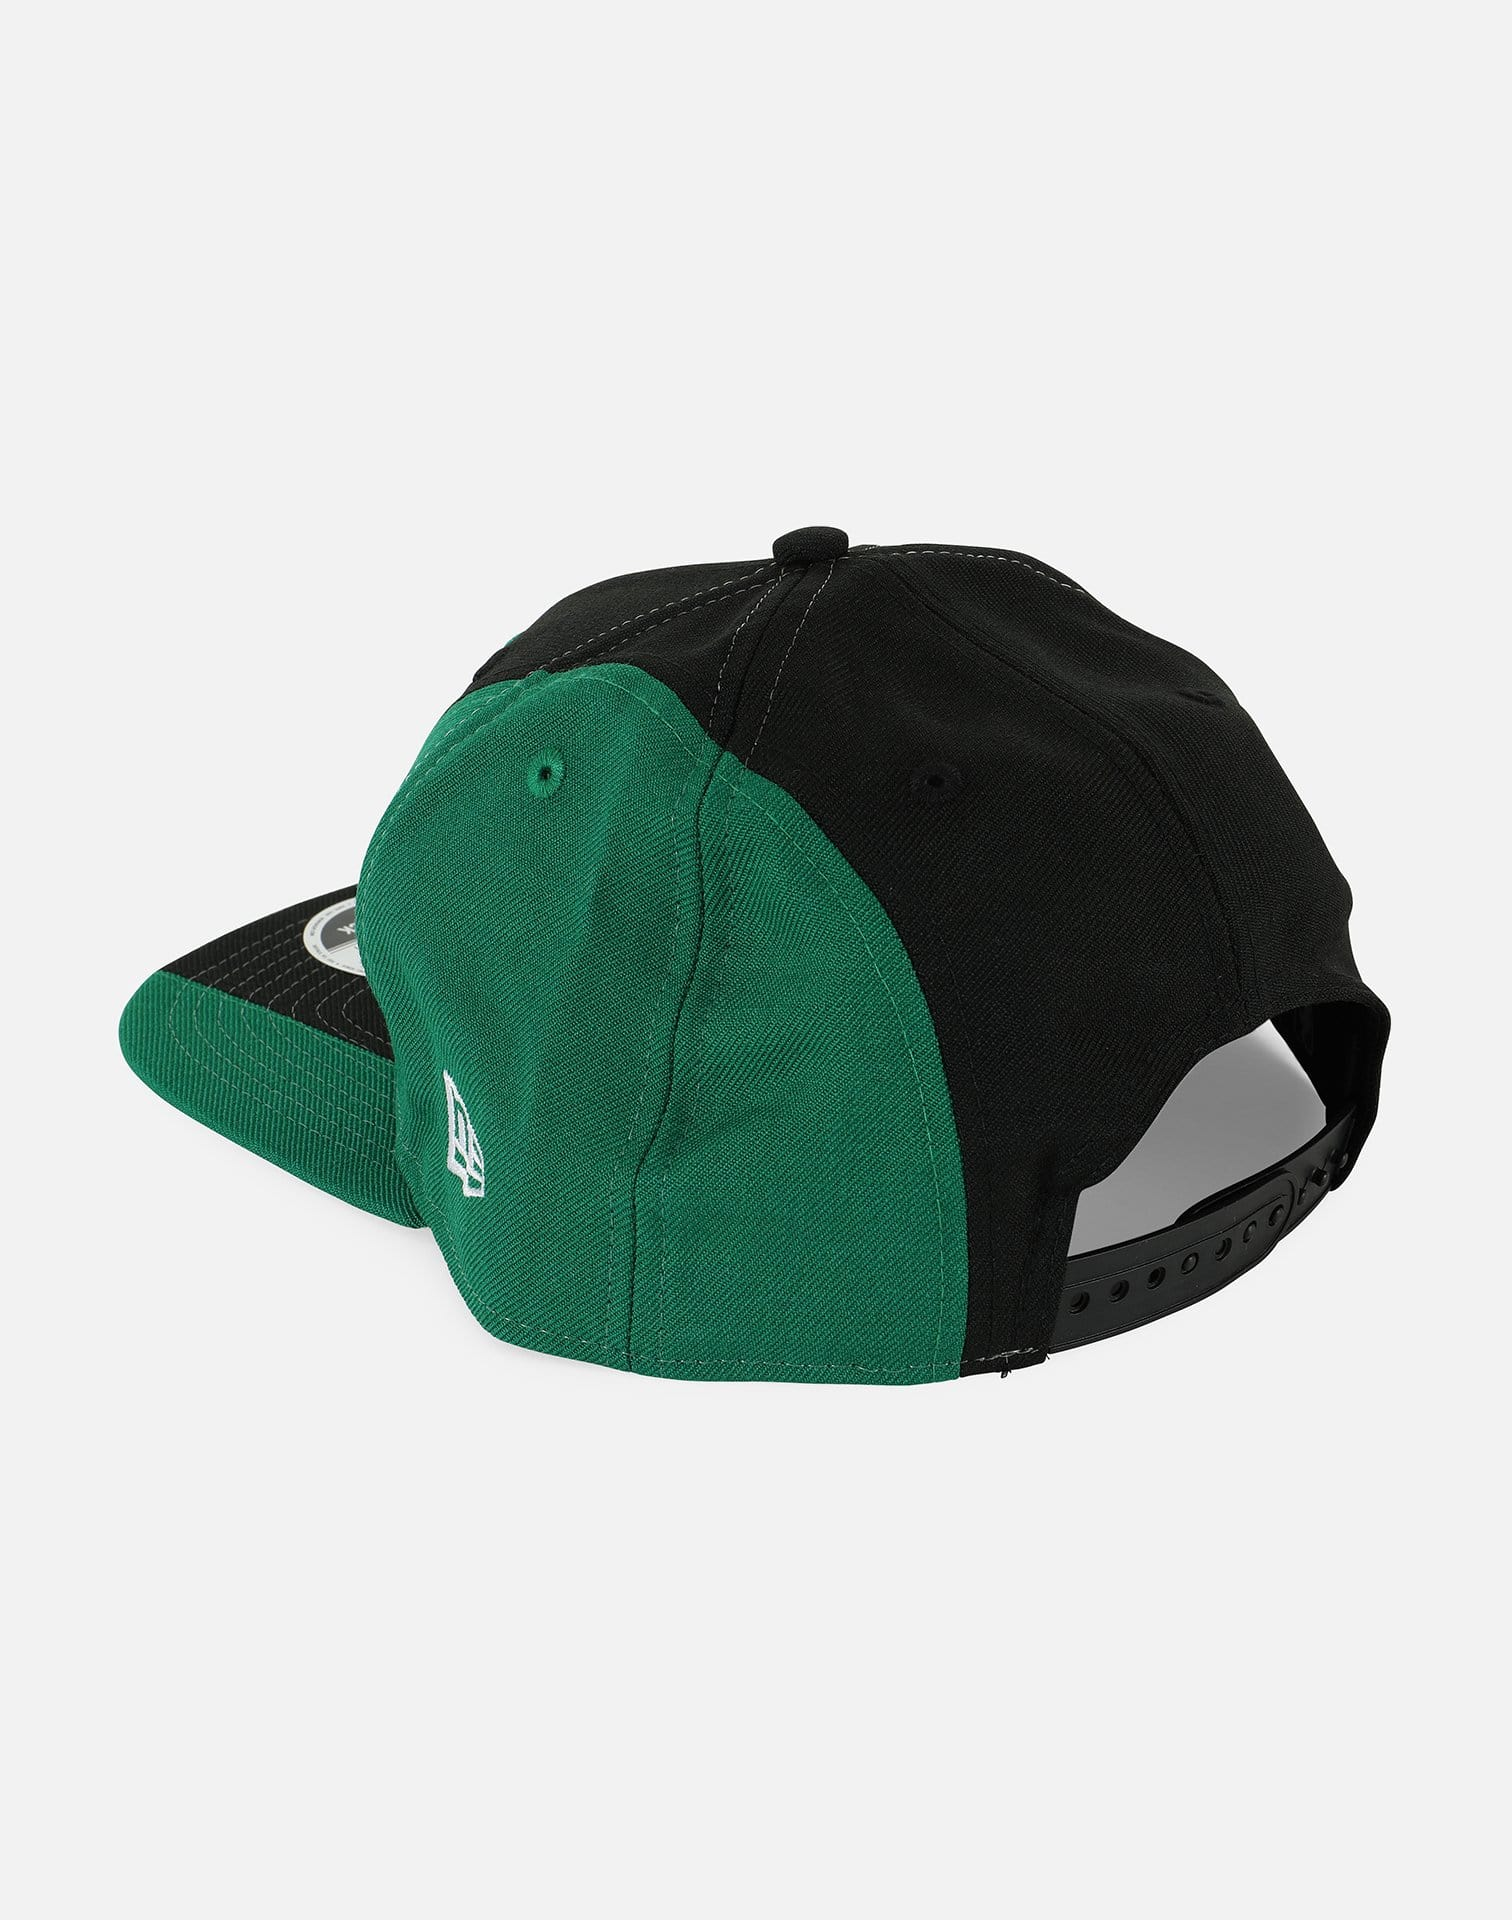 New Era Exclusive Customs NBA Boston Celtics XL 2-Tone Snapback Hat